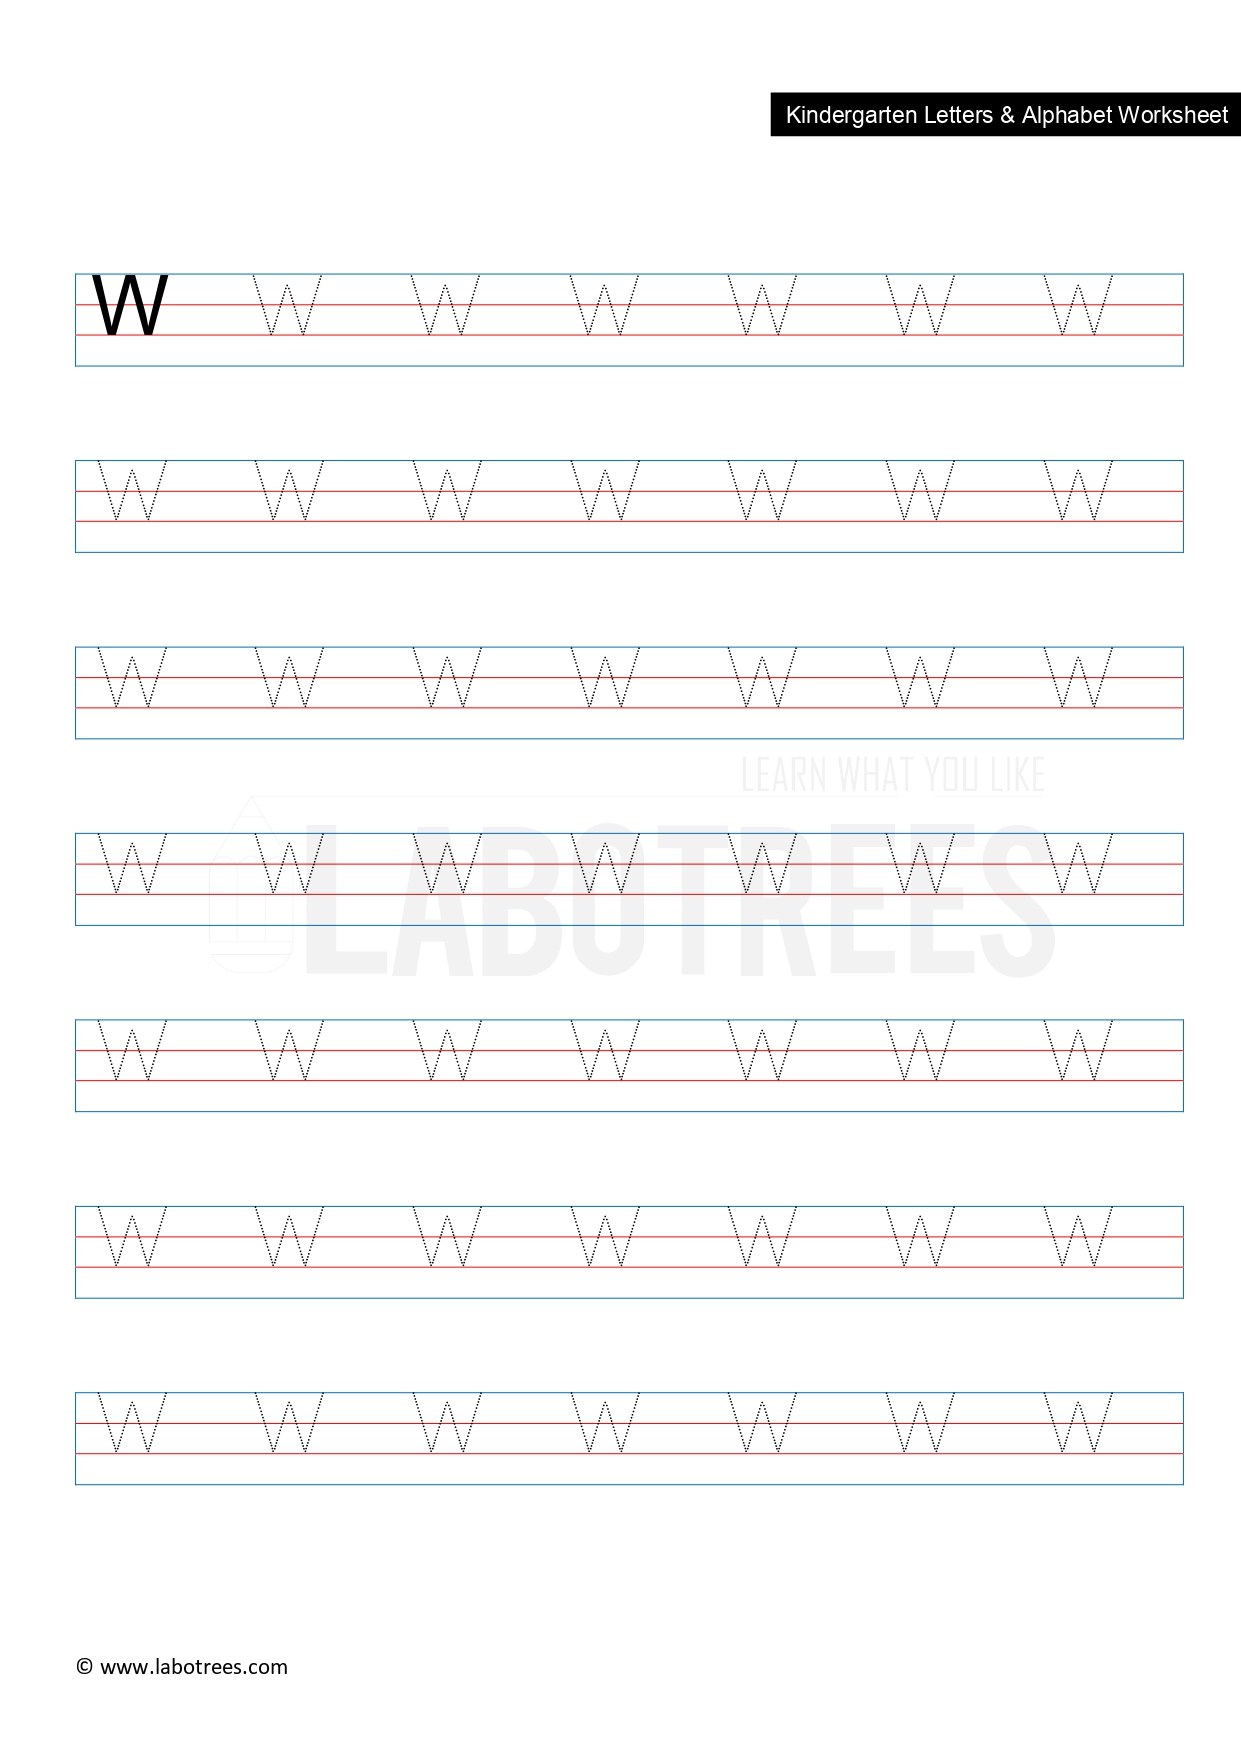 Worksheet Of Letter W Uppercase Free Download